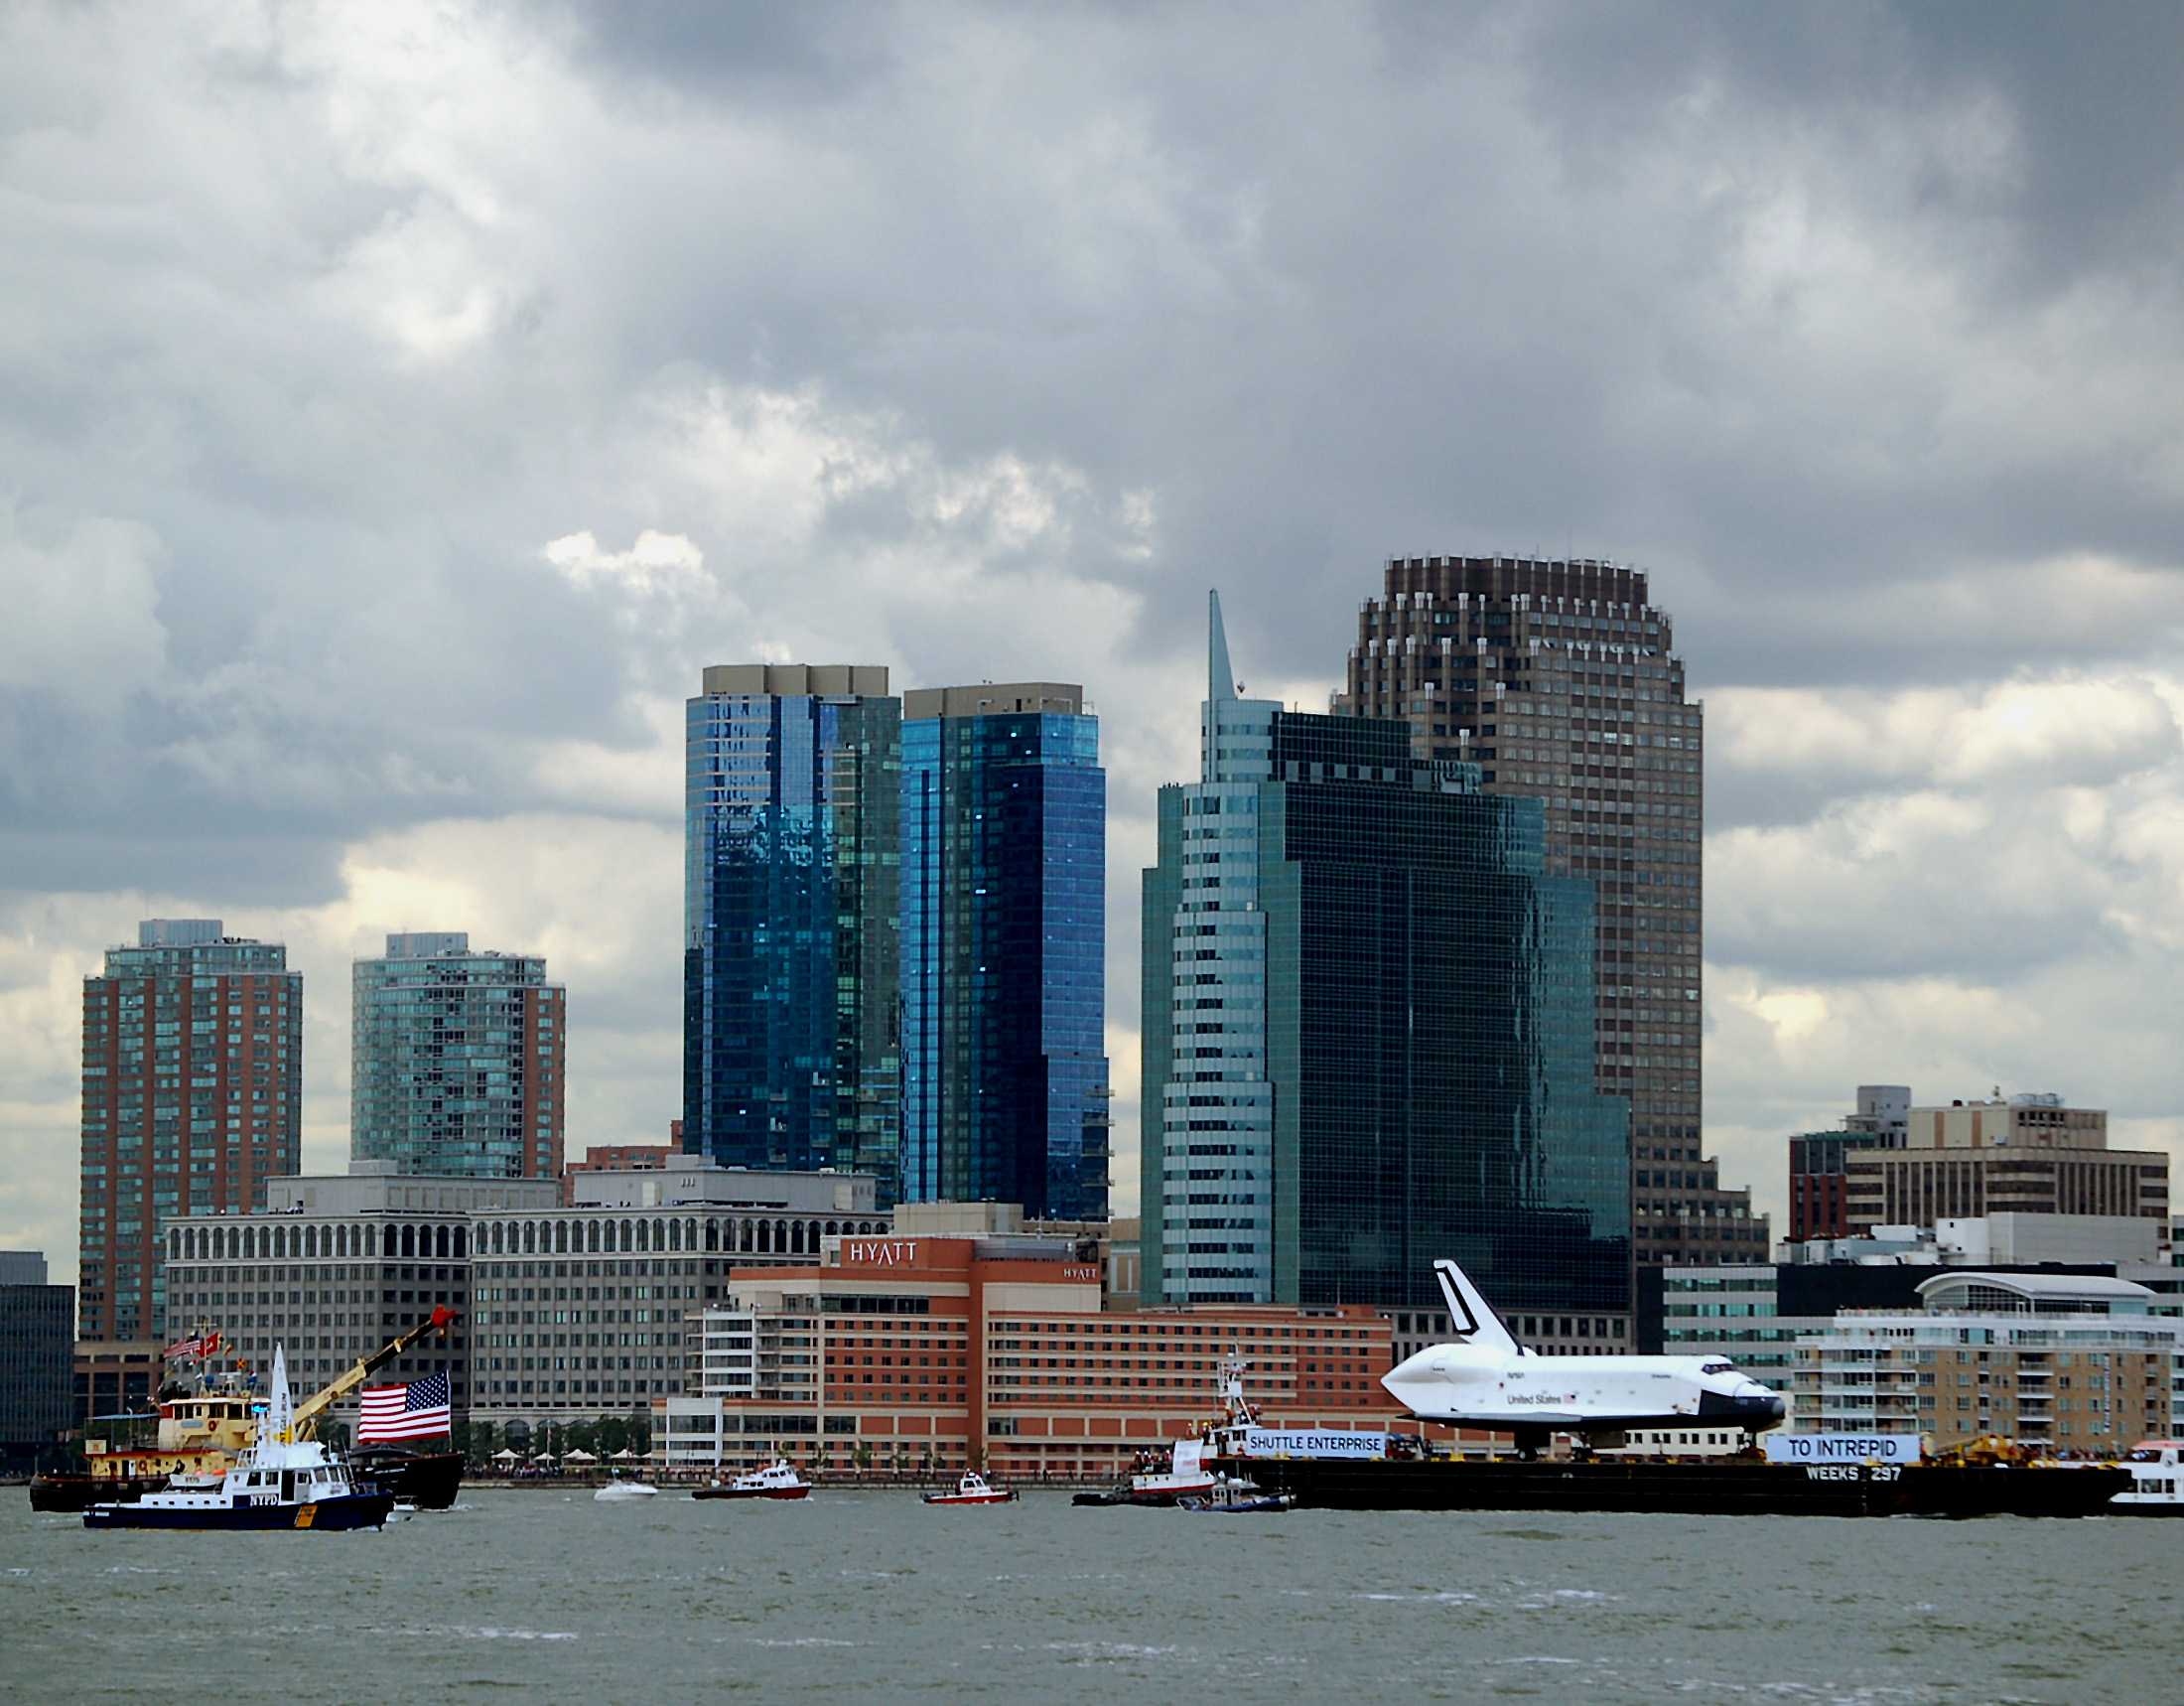 Space Shuttle Enterprise sails up the Hudson